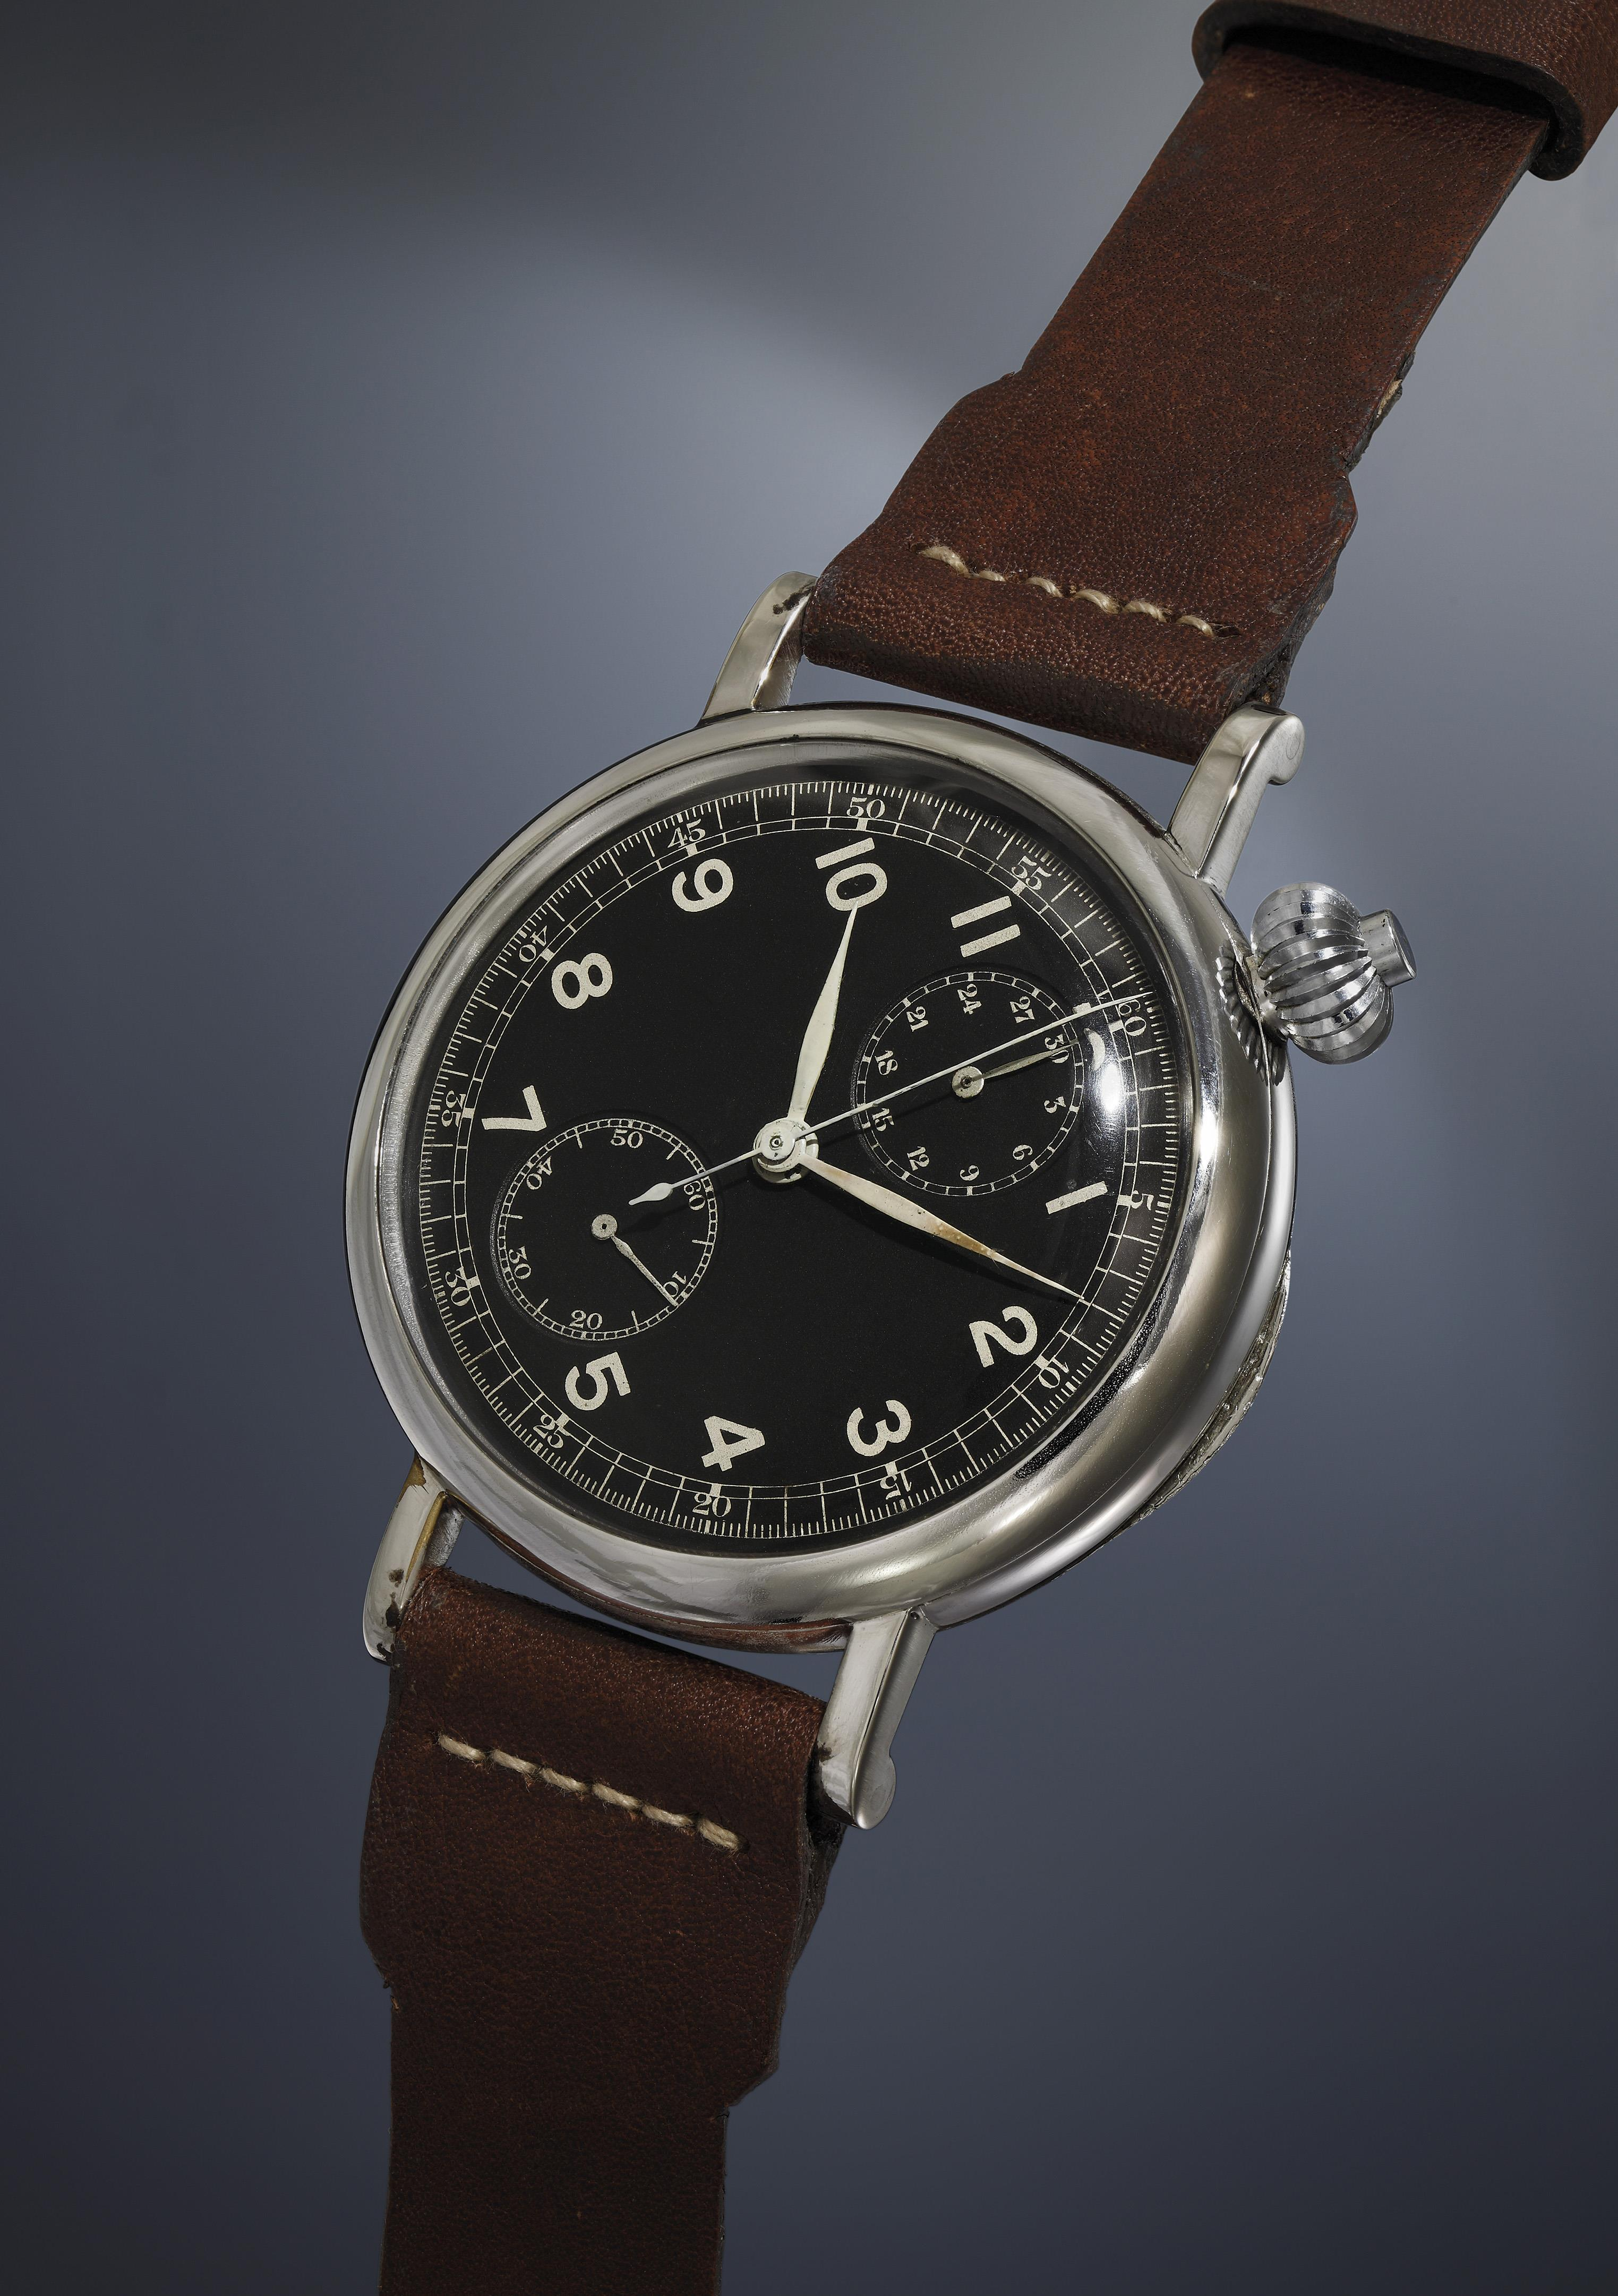 An oversized, rare and historically important asymmetrical chrome plated pilot's chronograph wristwatch with black dial, single button pusher and military markings, made for the US Army.